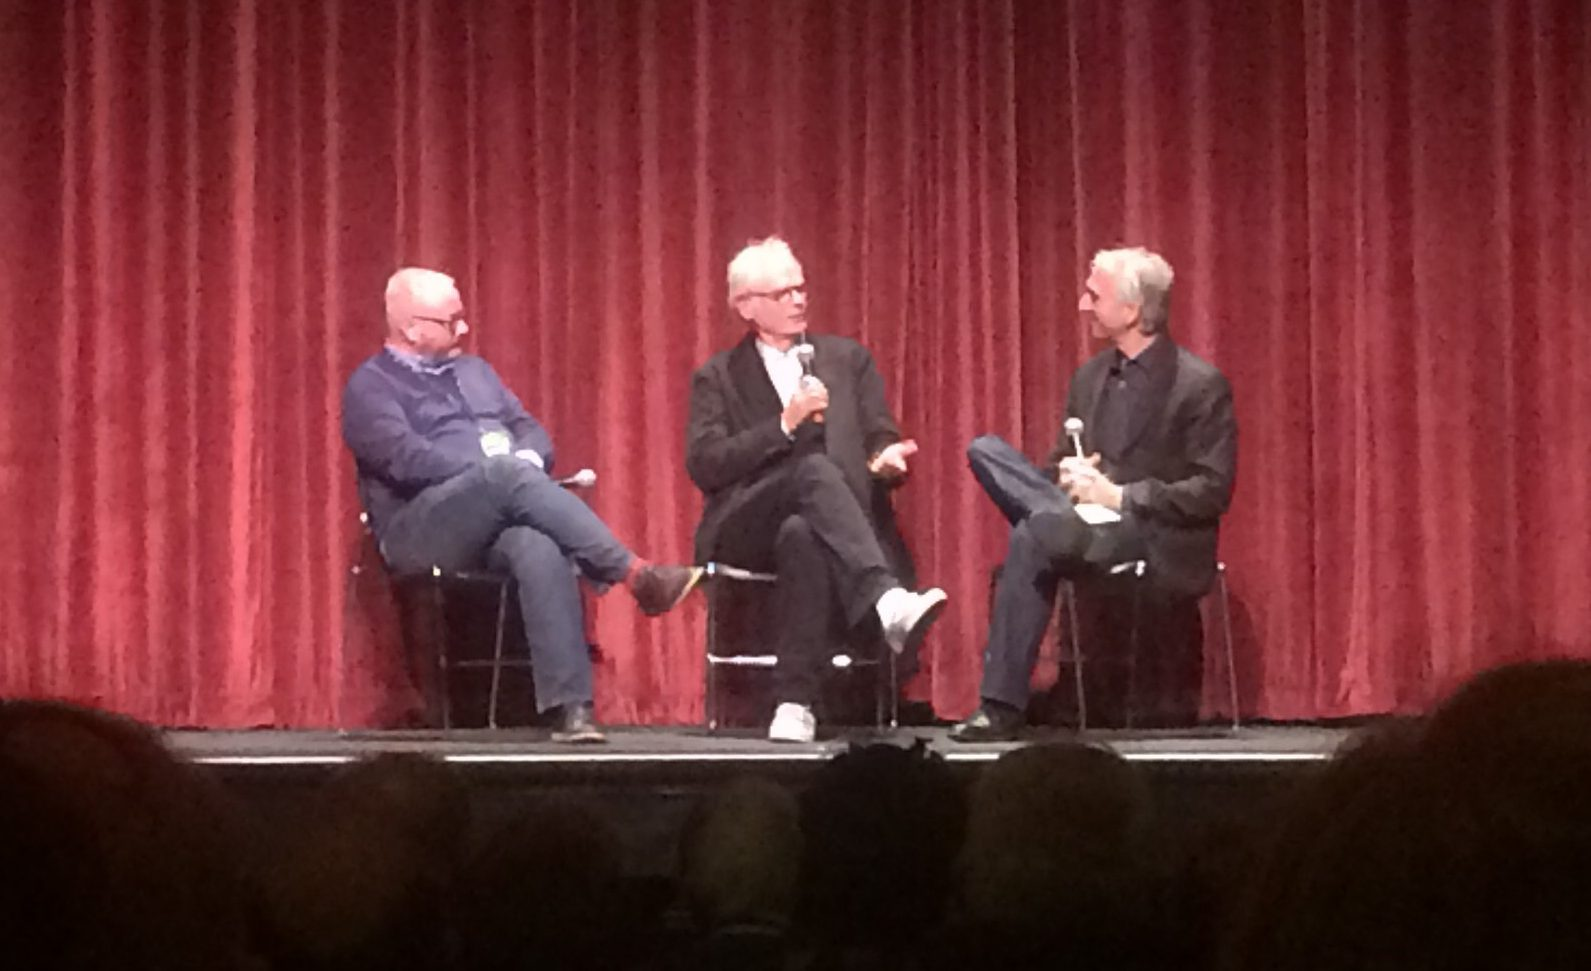 "Nate Cohn (left) listens as Caleb Deschanel recounts working as a cinematographer on the 1979 film, ""Being There."" Deschanel at first denied political themes for the movie, but he later admitted to the film's prevalent power and political motifs."